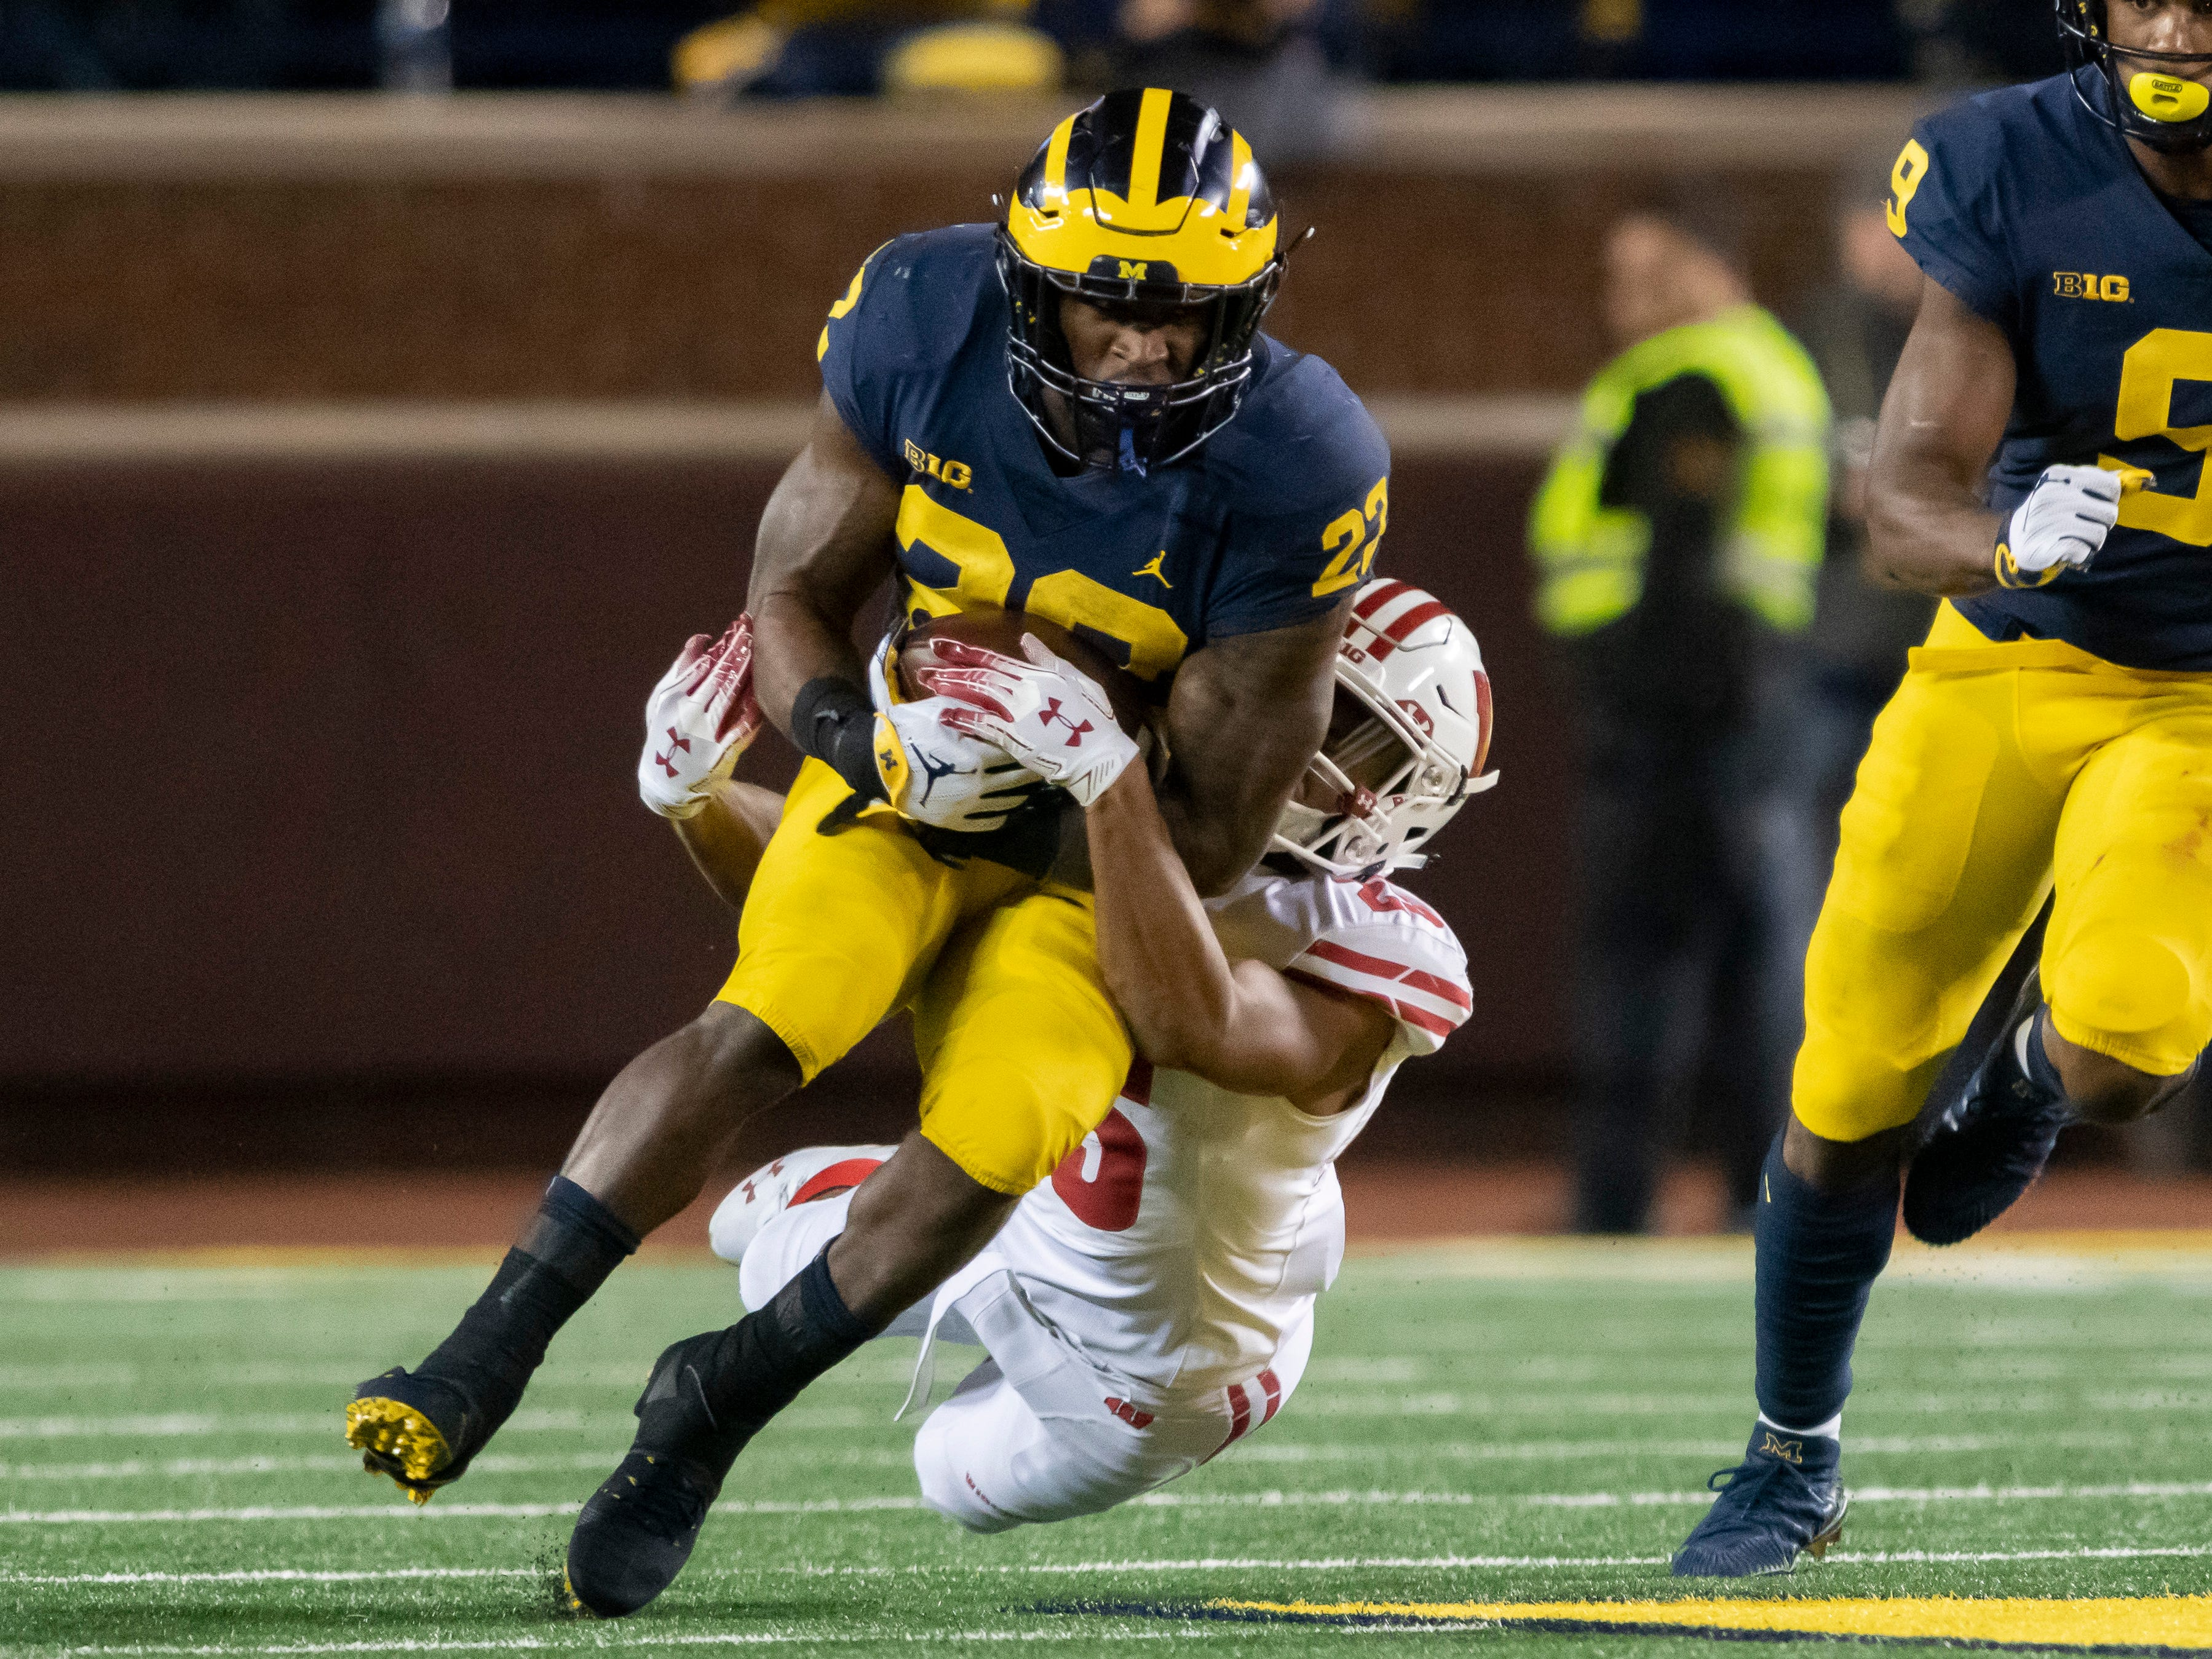 Michigan running back Karan Higdon runs the ball while being tackled by Wisconsin safety Eric Burrell in the third quarter.